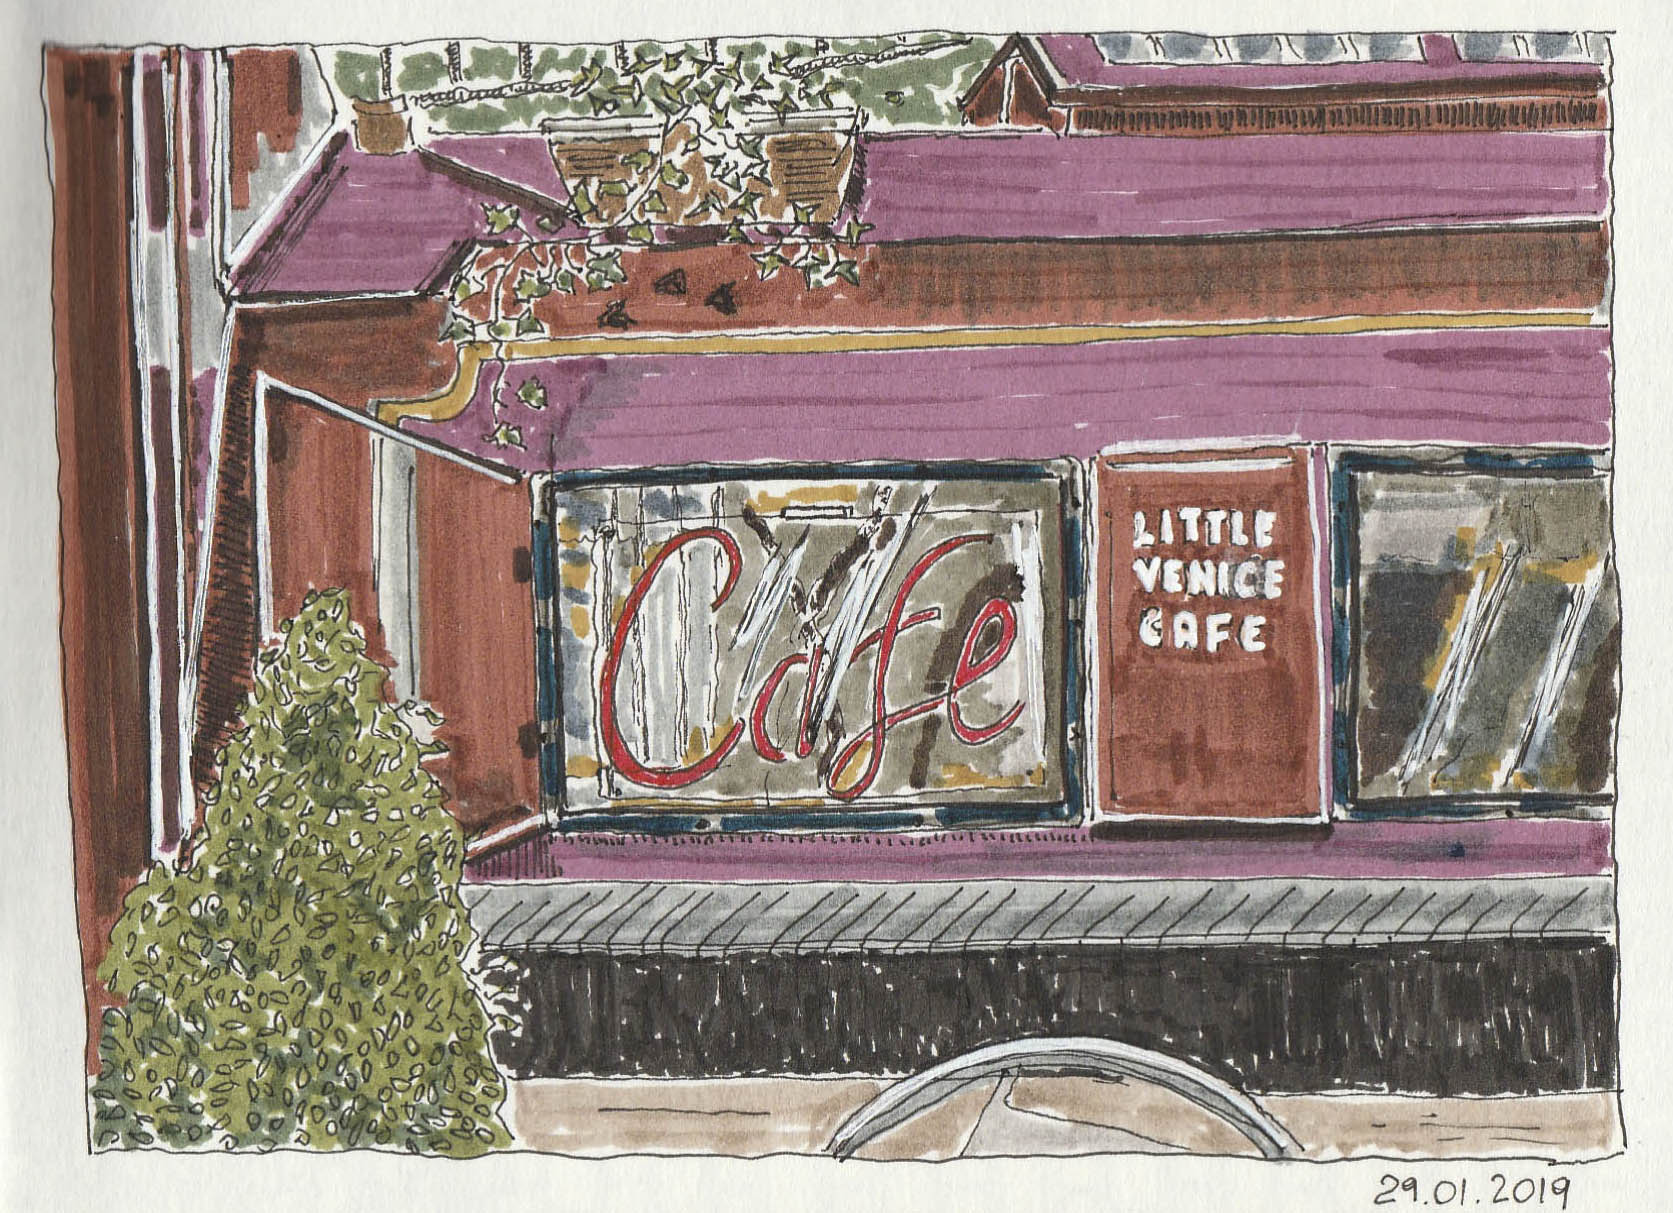 Little Venice Cafe'